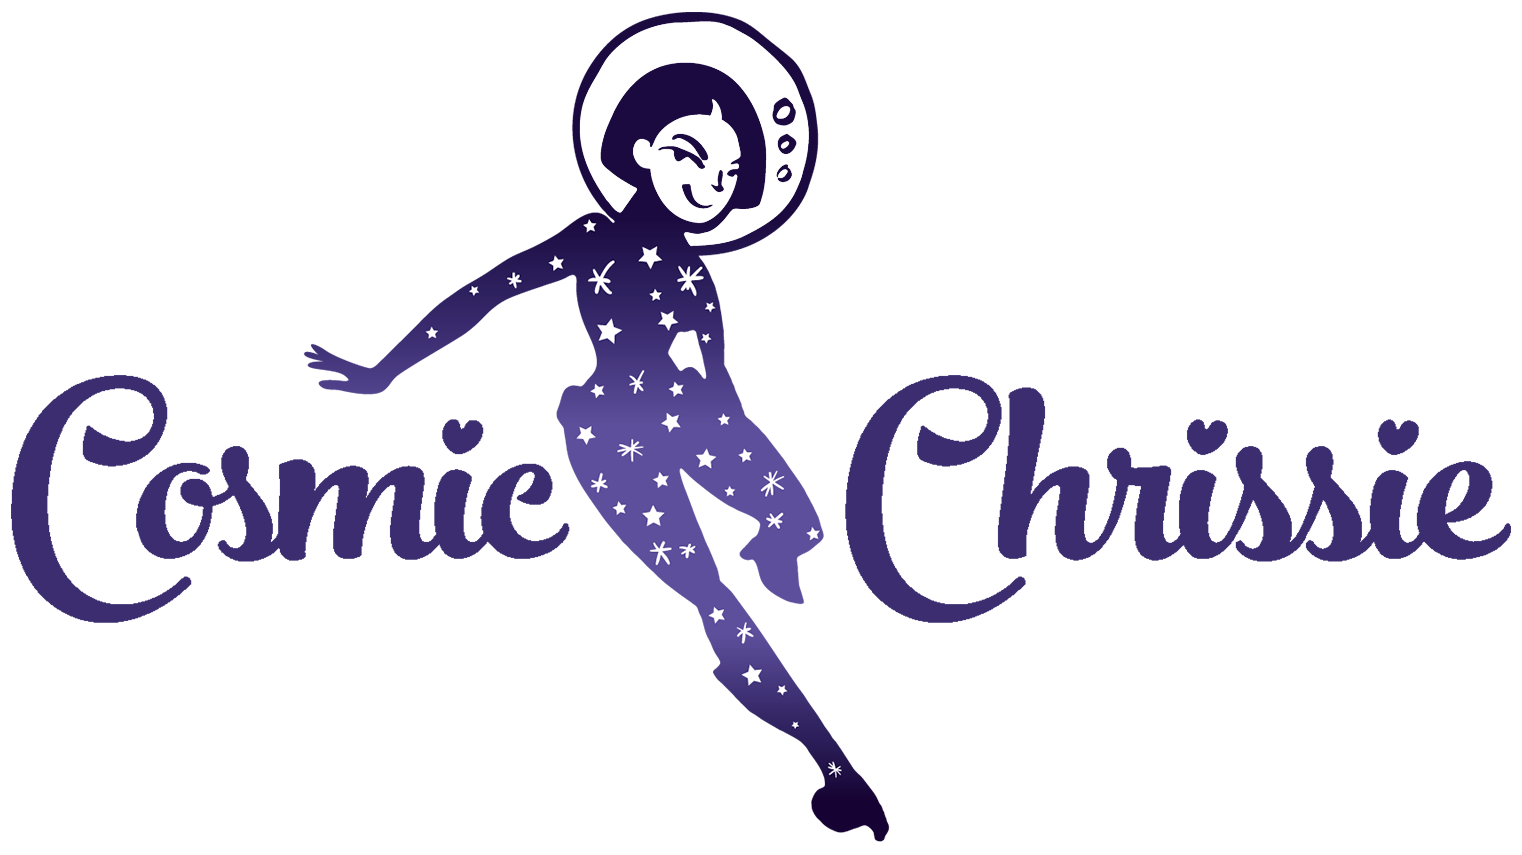 Cosmic Chrissie client character logo